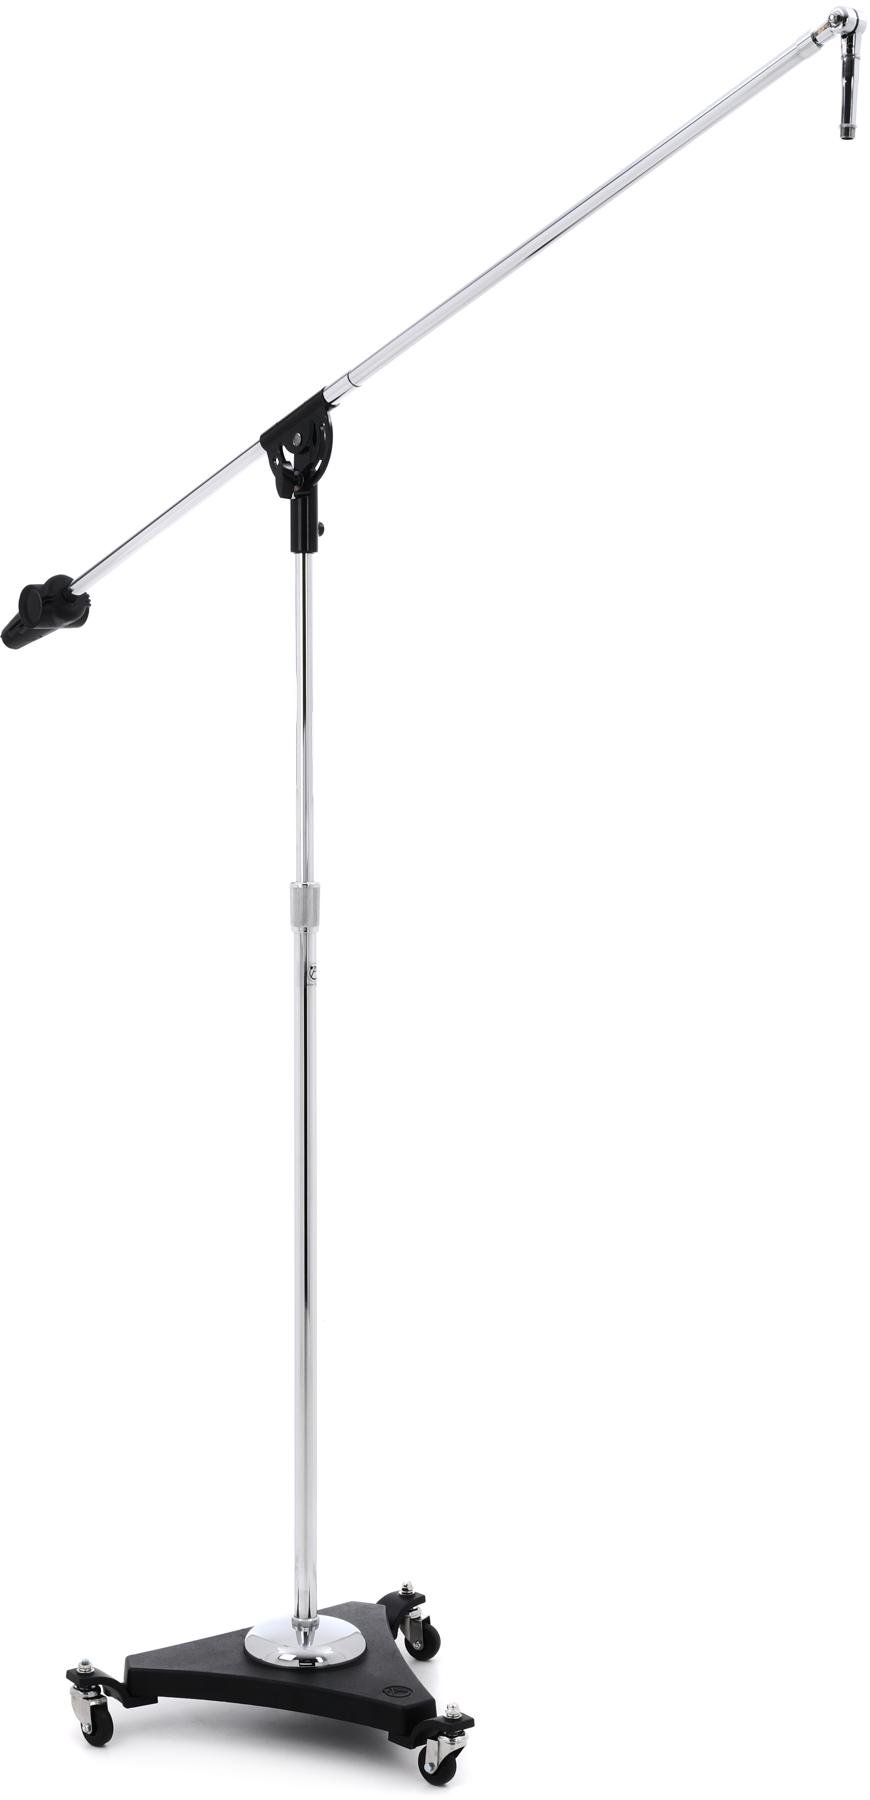 Very /'Retro/' look Professional CHROME Upright Microphone Stand